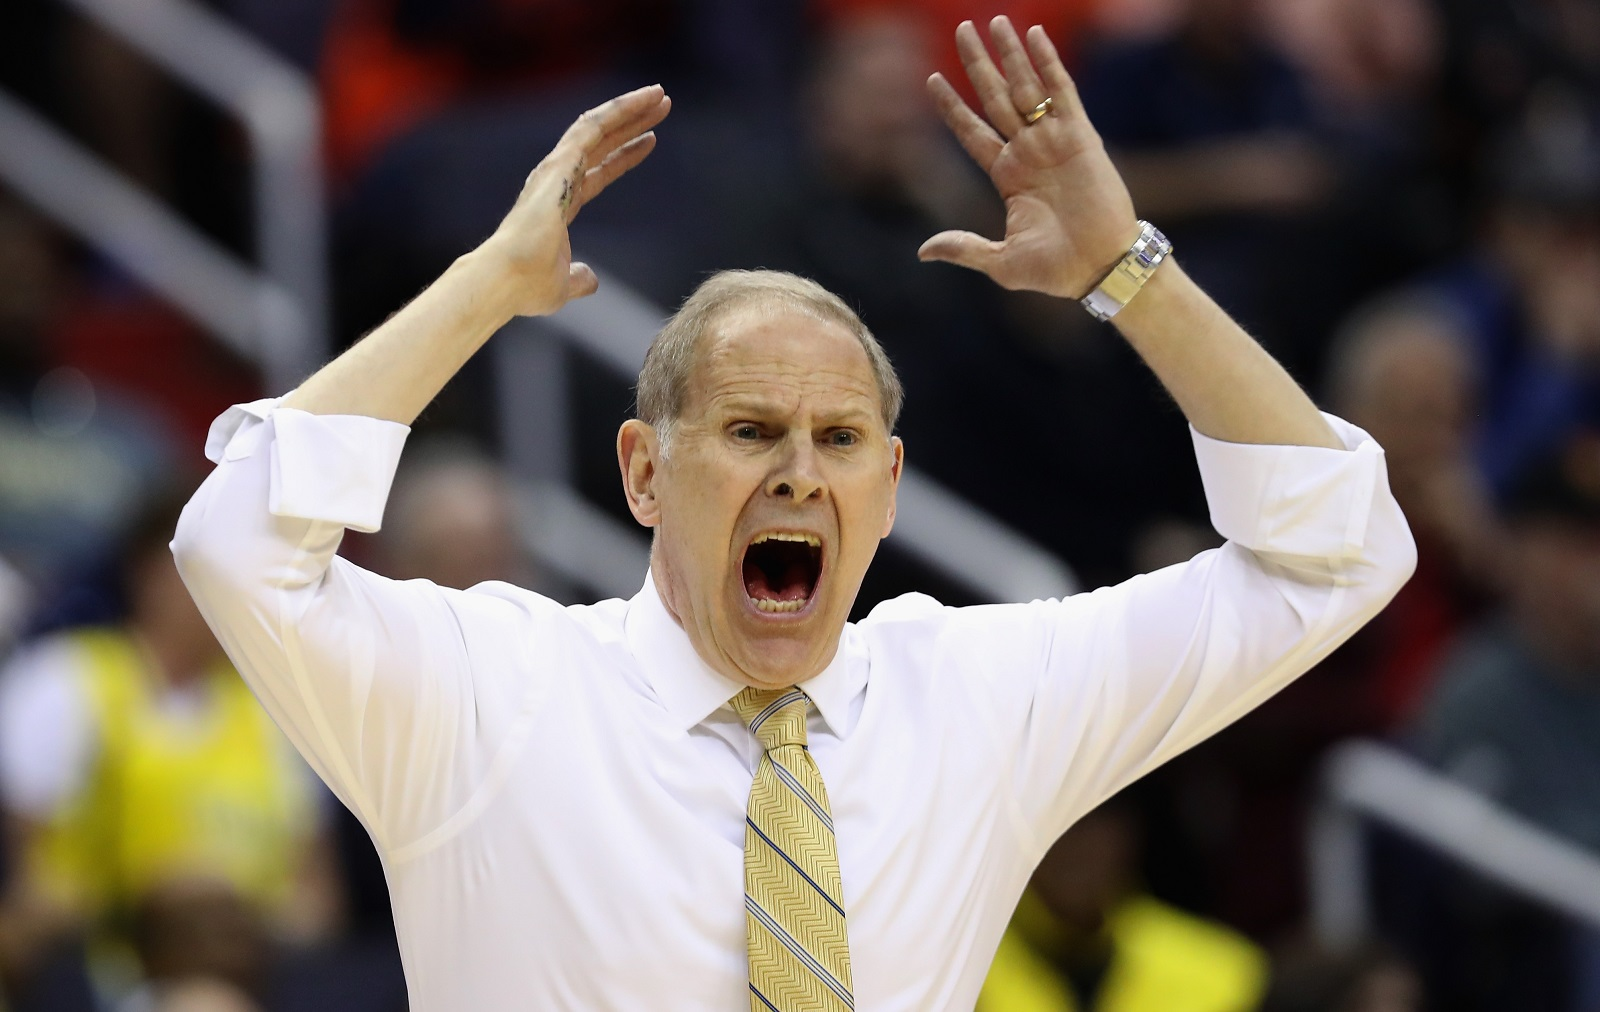 Michigan coach John Beilein (Getty Images)